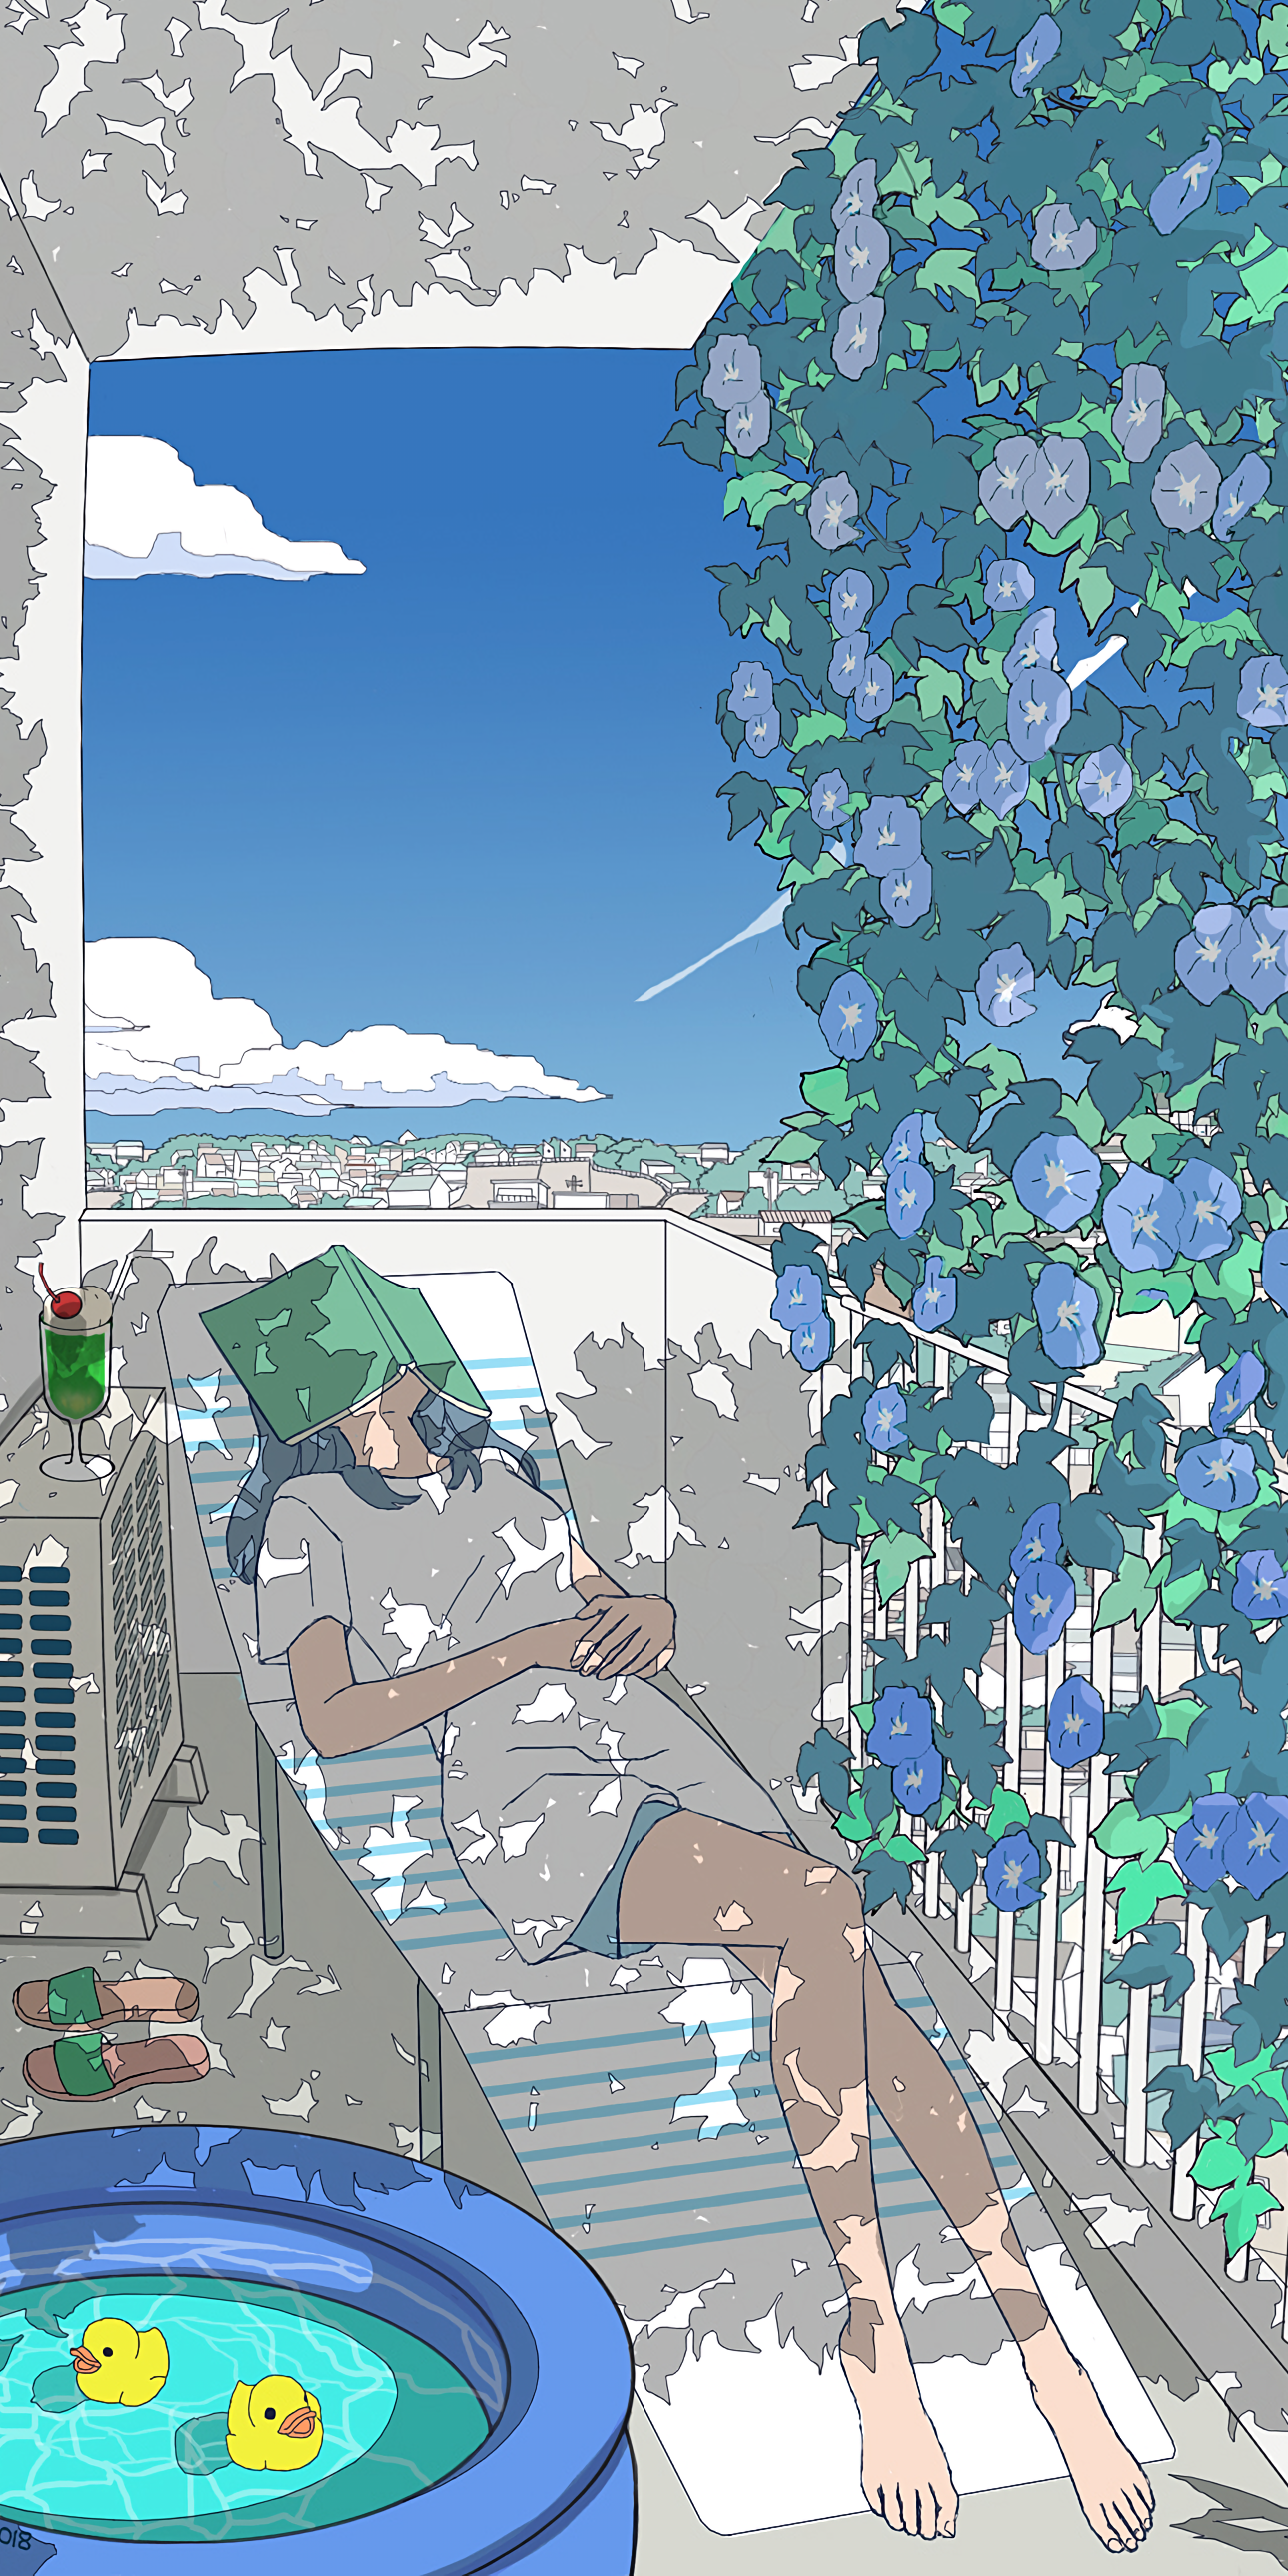 A Summer Afternoon [Original] (2577 x 1289) / Full-scale in comments/